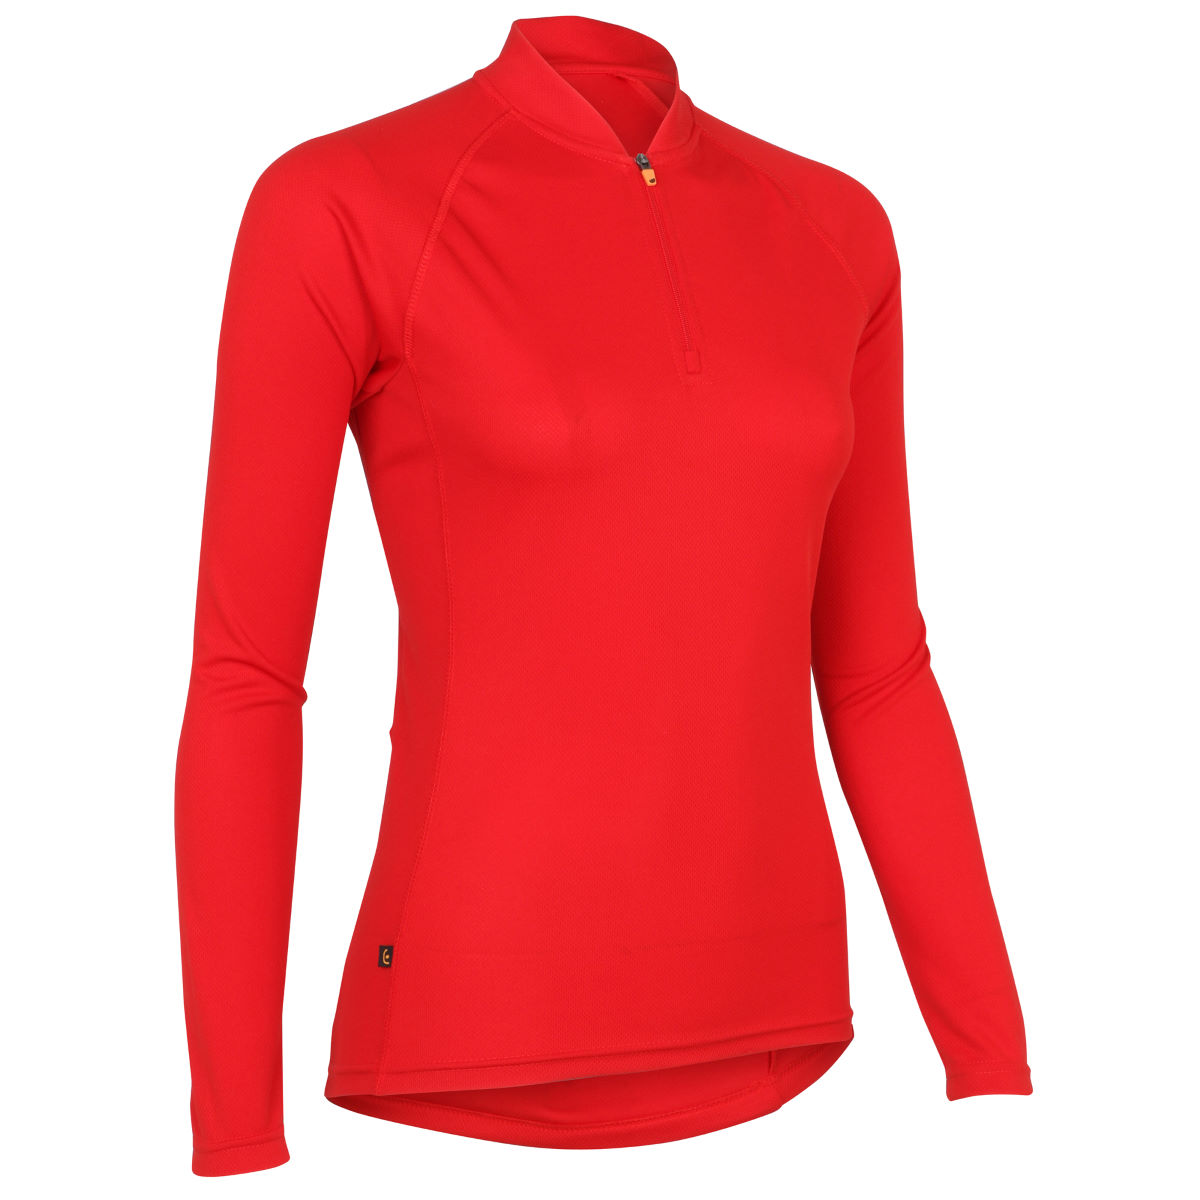 Maillot Femme Wiggle Essentials (manches longues) - 12 UK Rouge